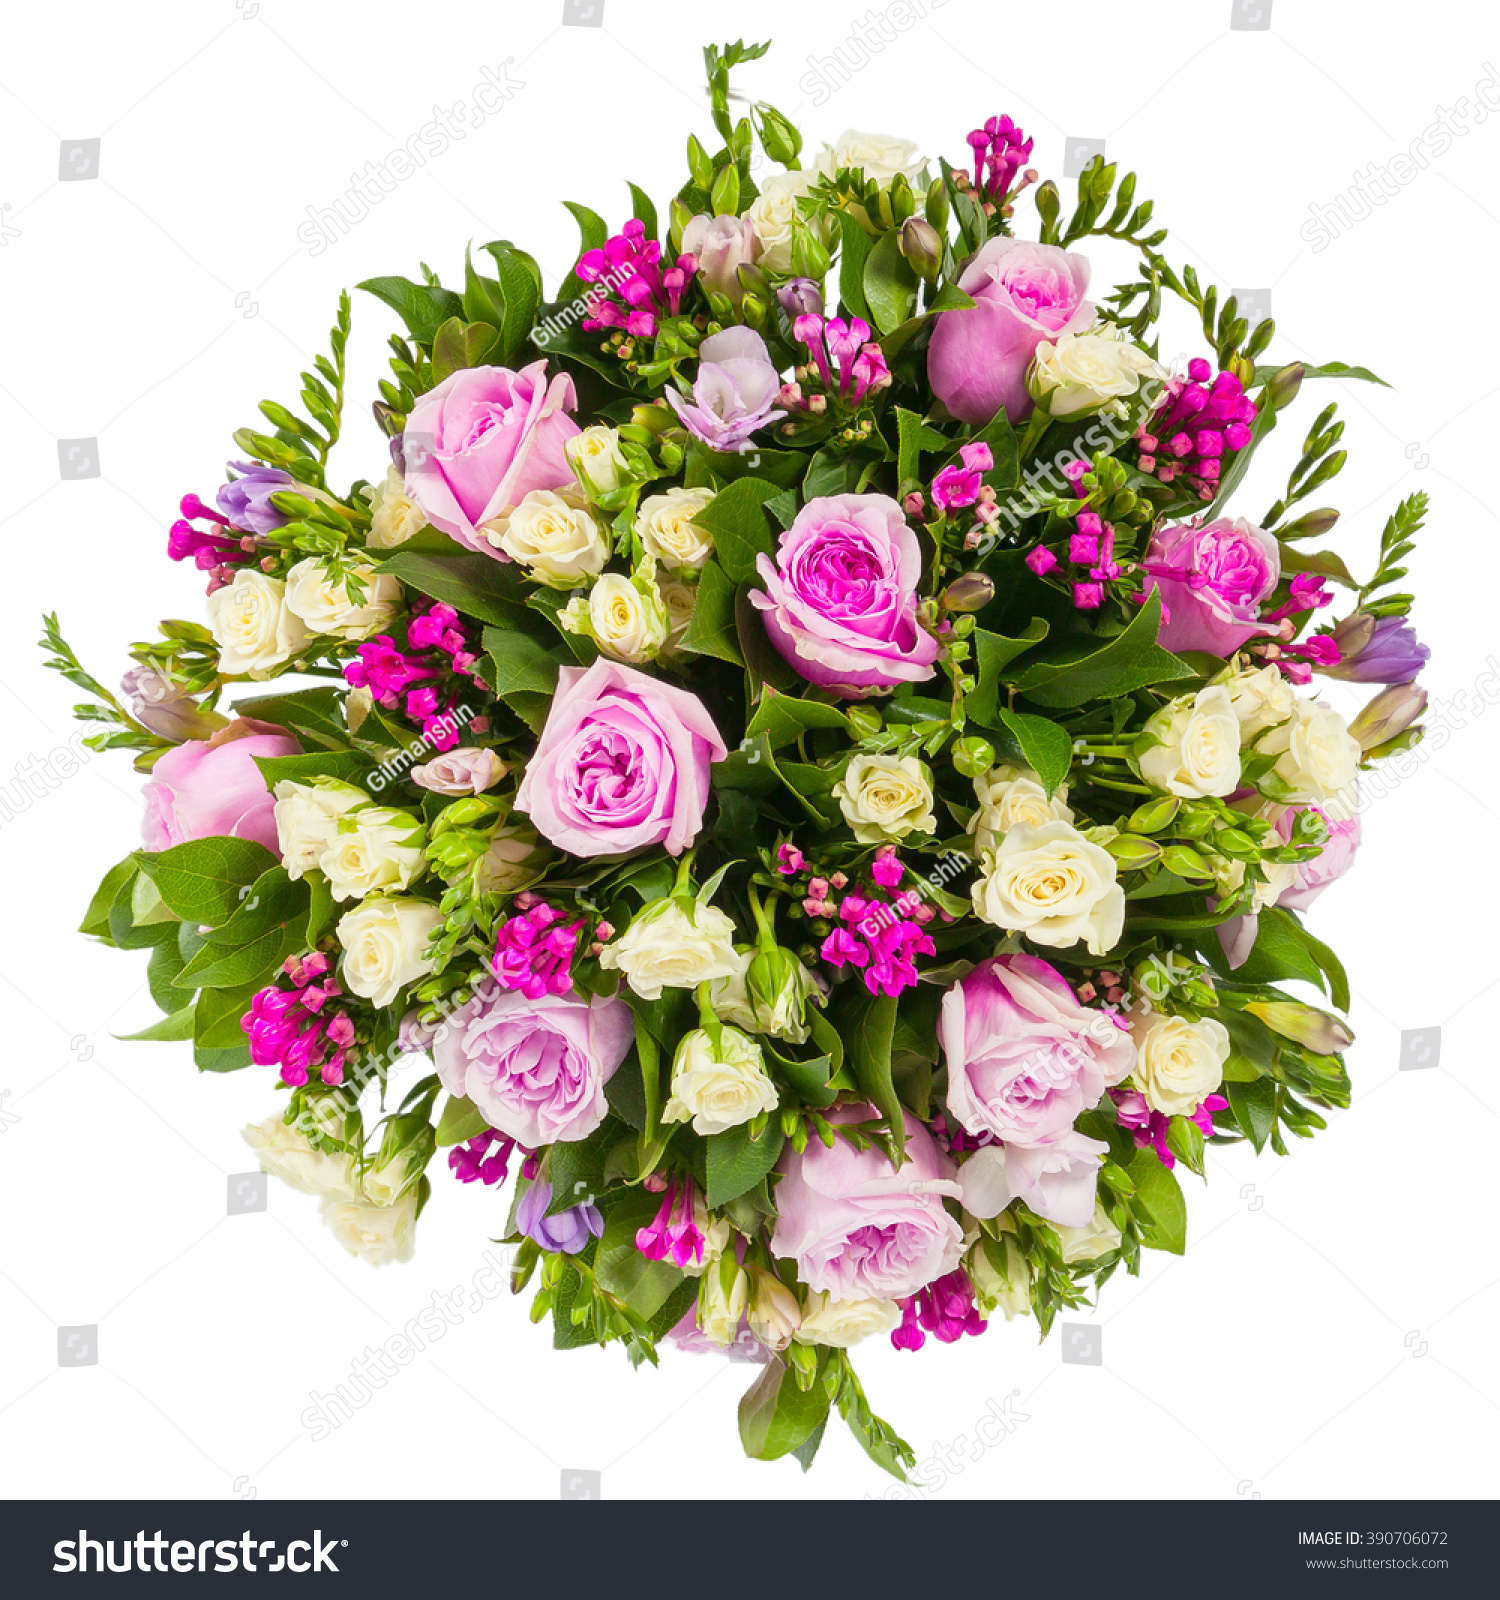 Royalty Free Bouquet Of Flowers Top View Isolated On 390706072